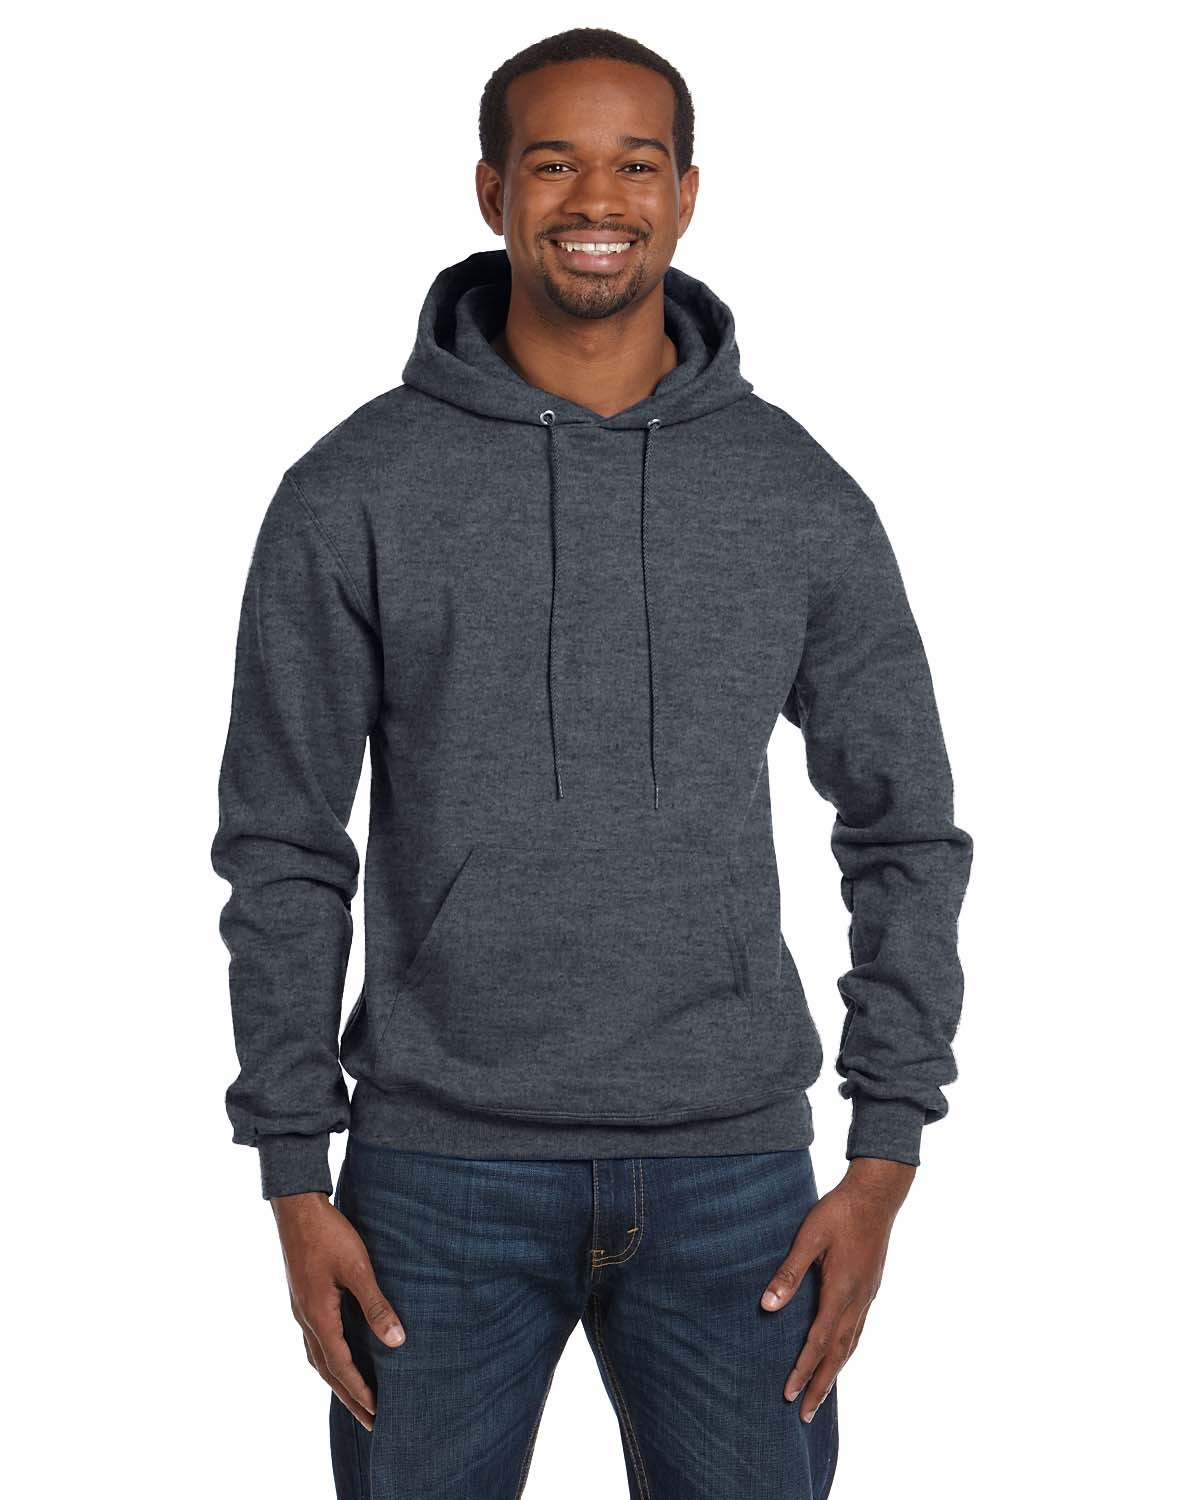 S700 Champion CHARCOAL HEATHER